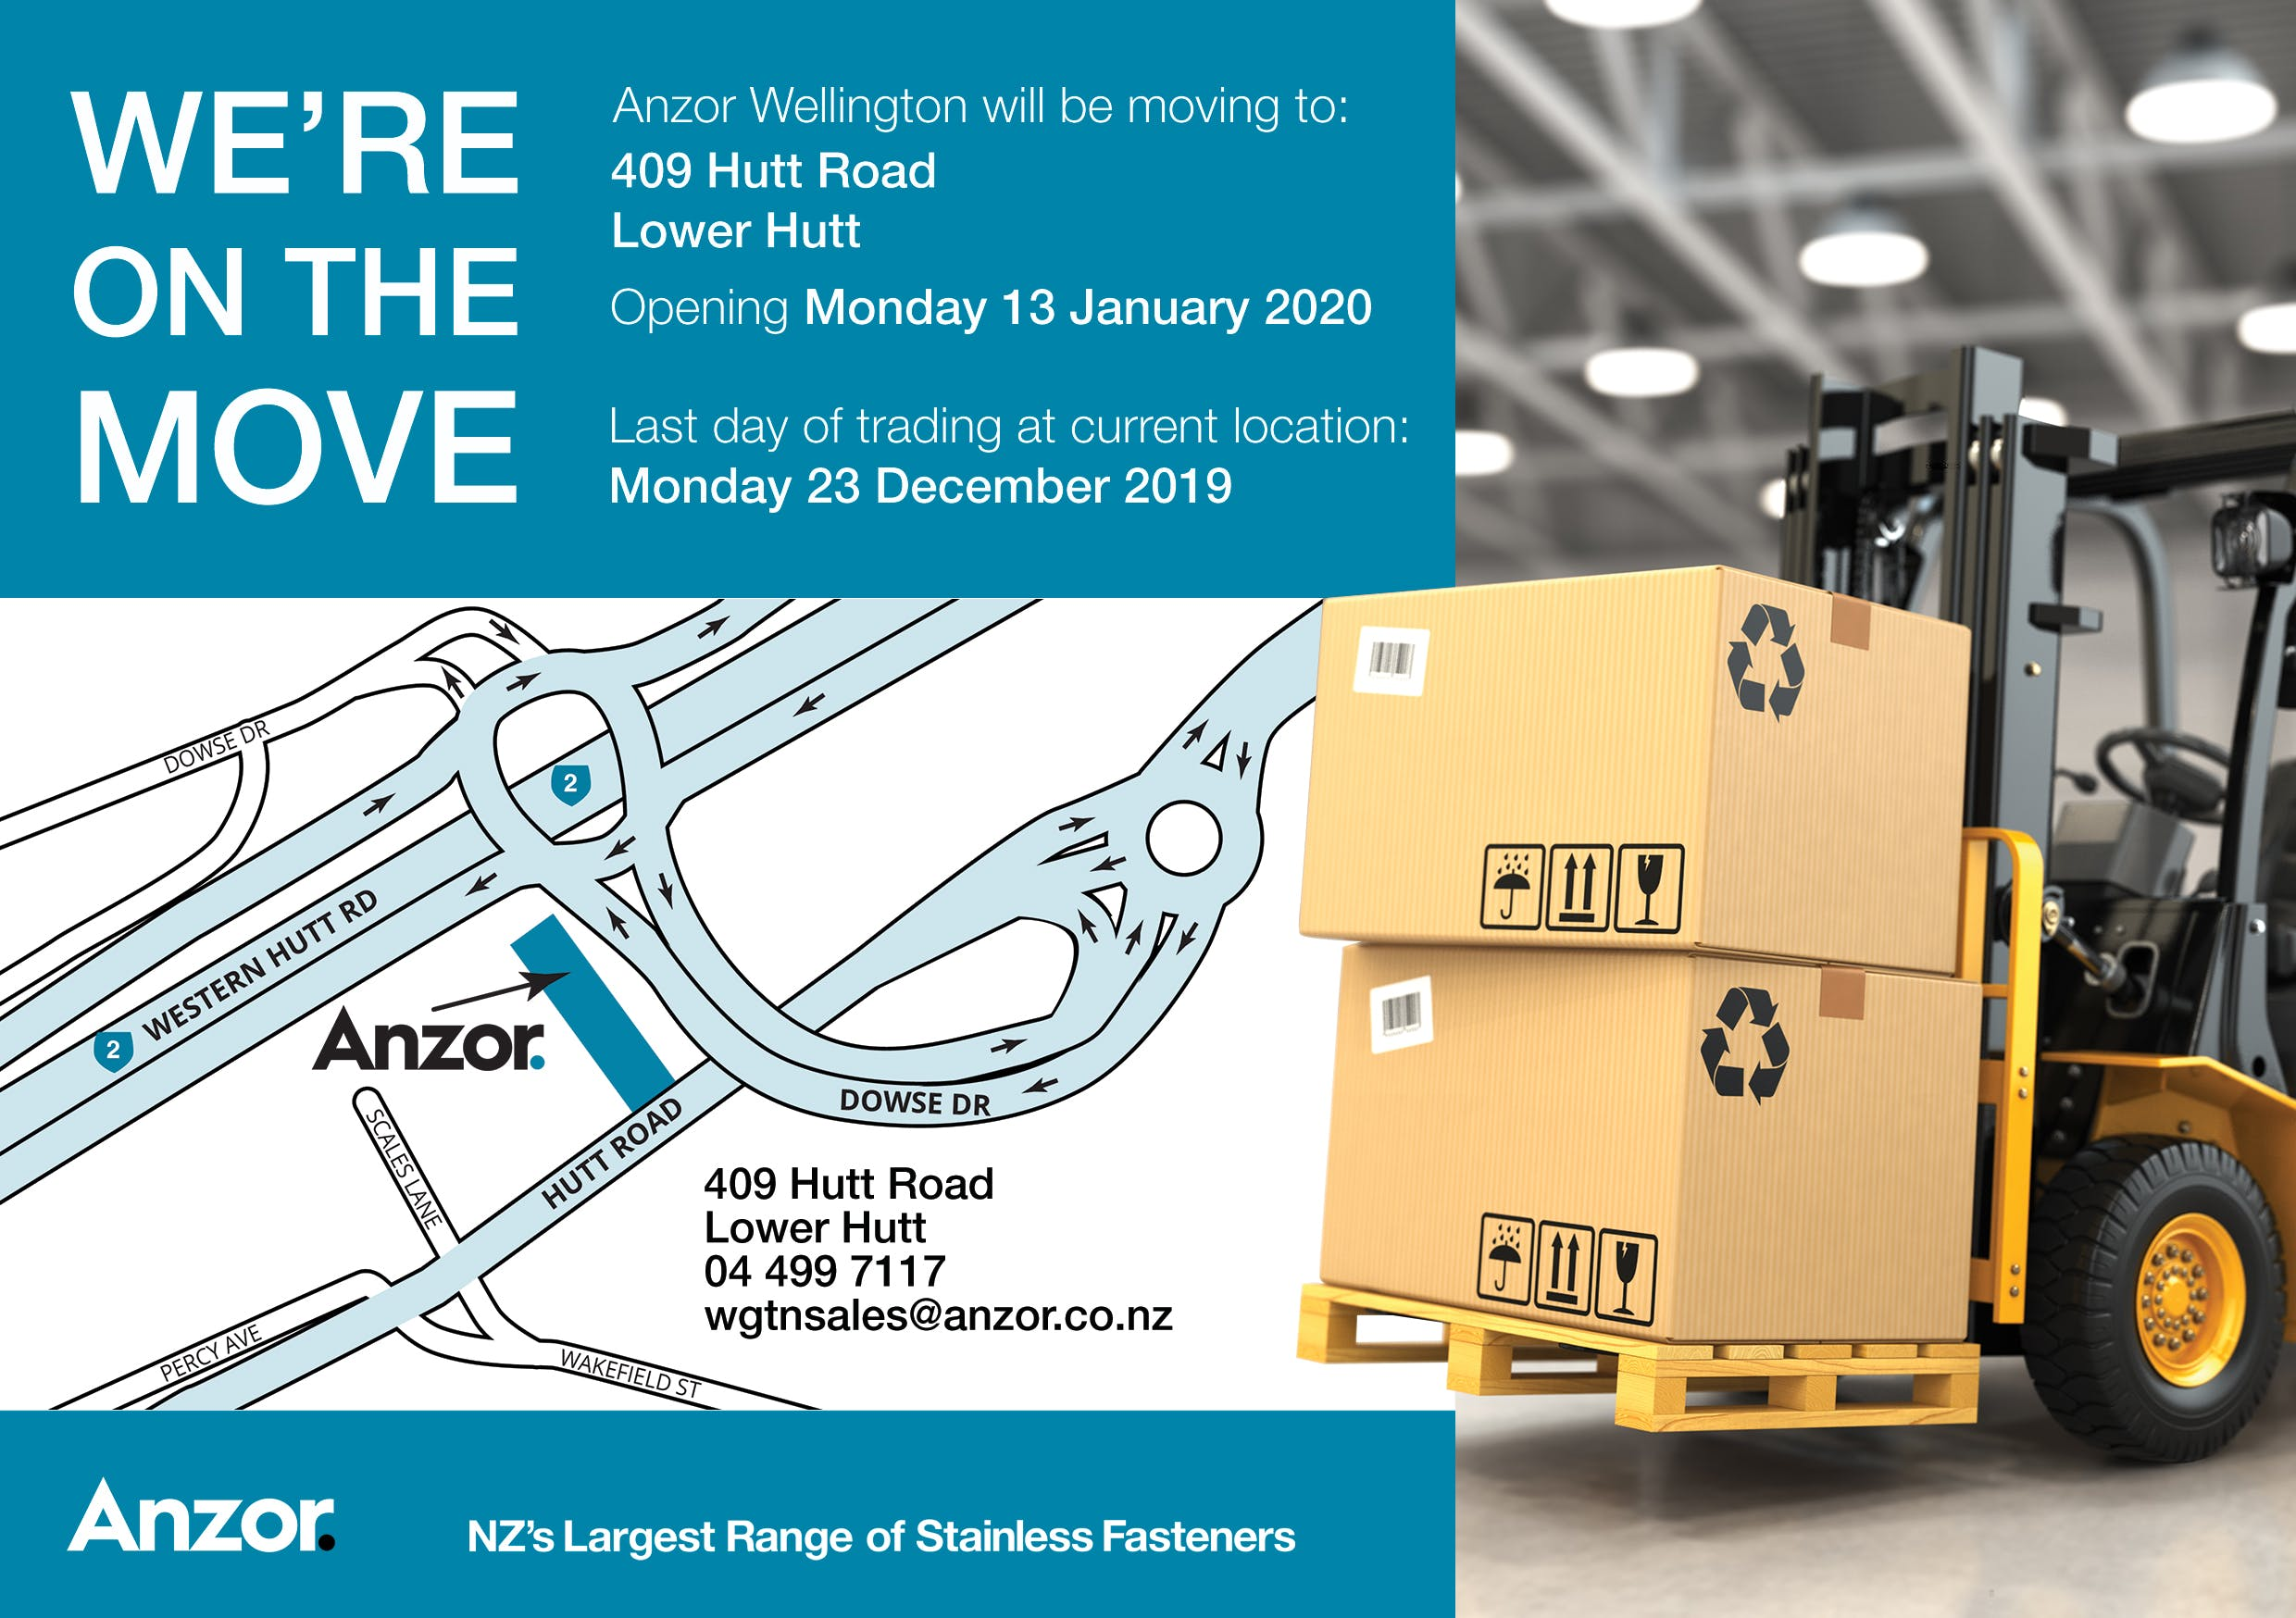 Our Wellington Branch is Moving!